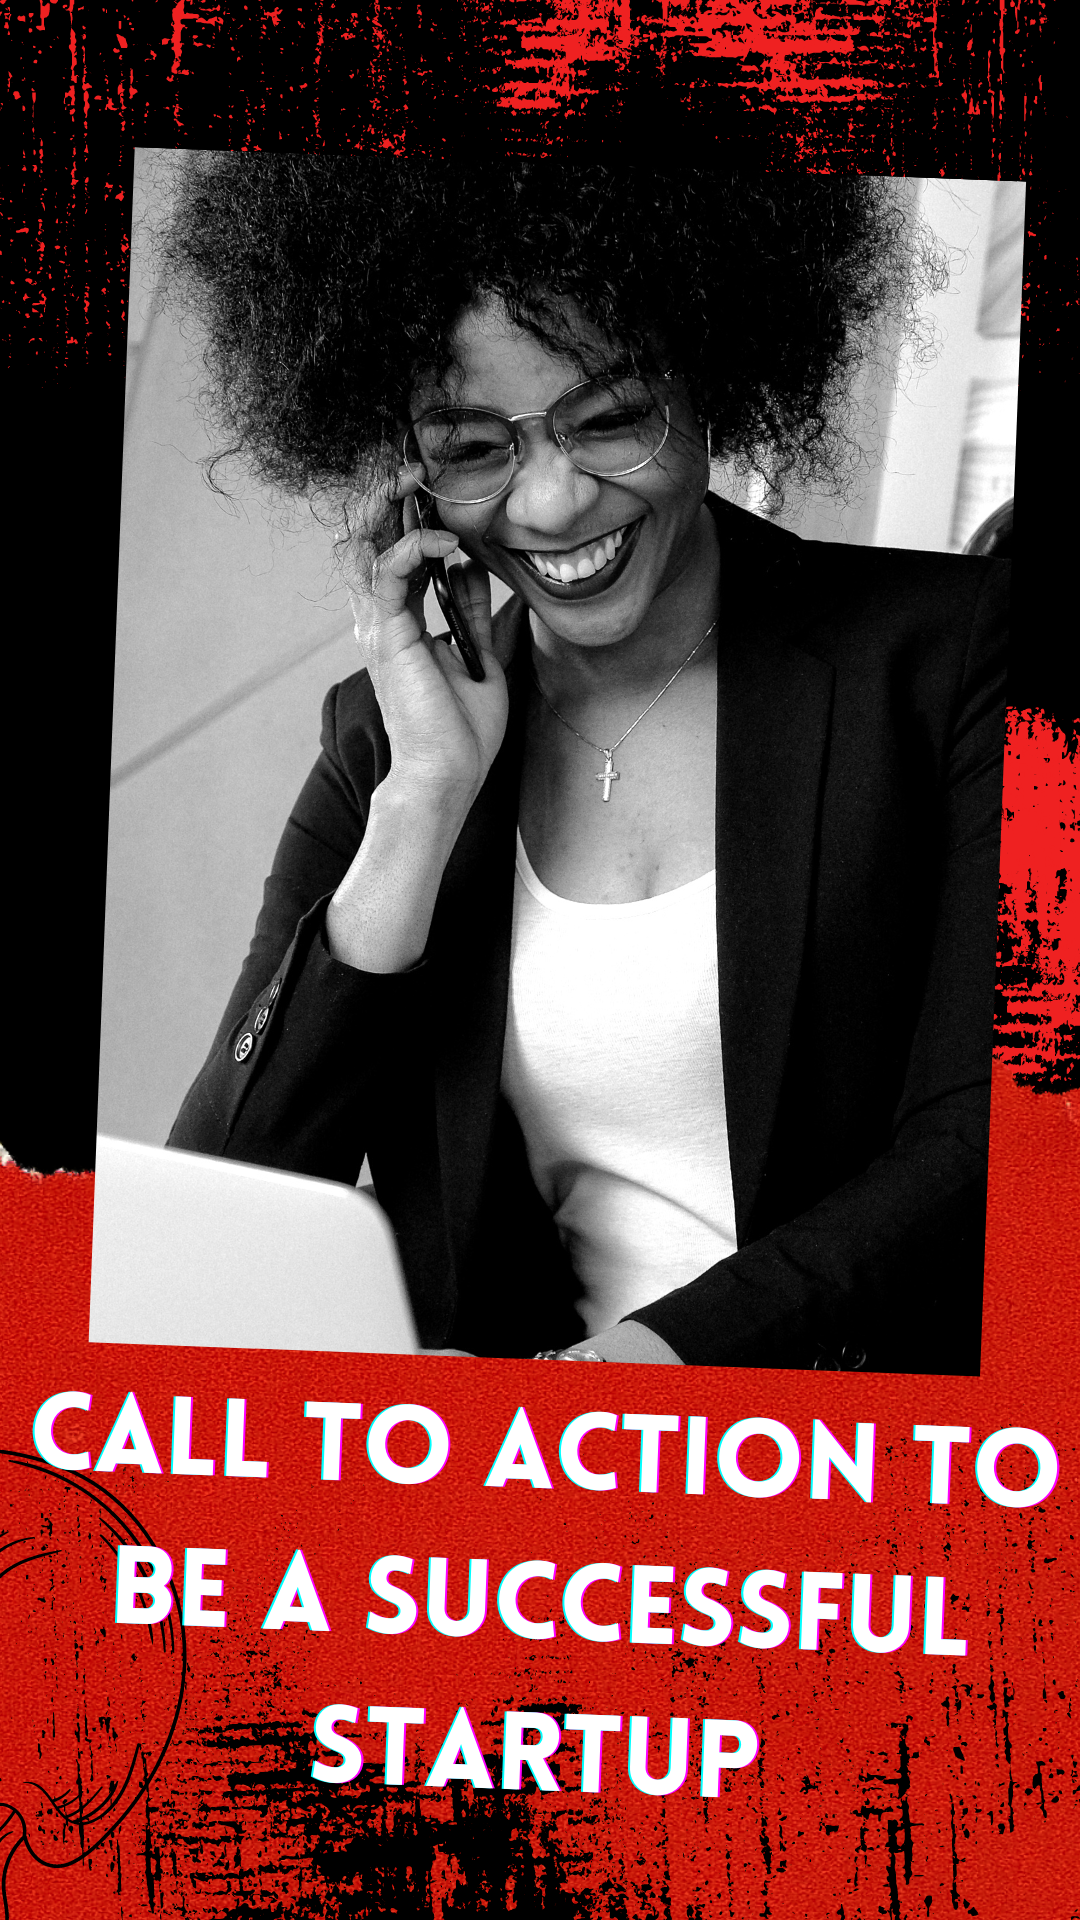 Call to Action to be a Successful Startup